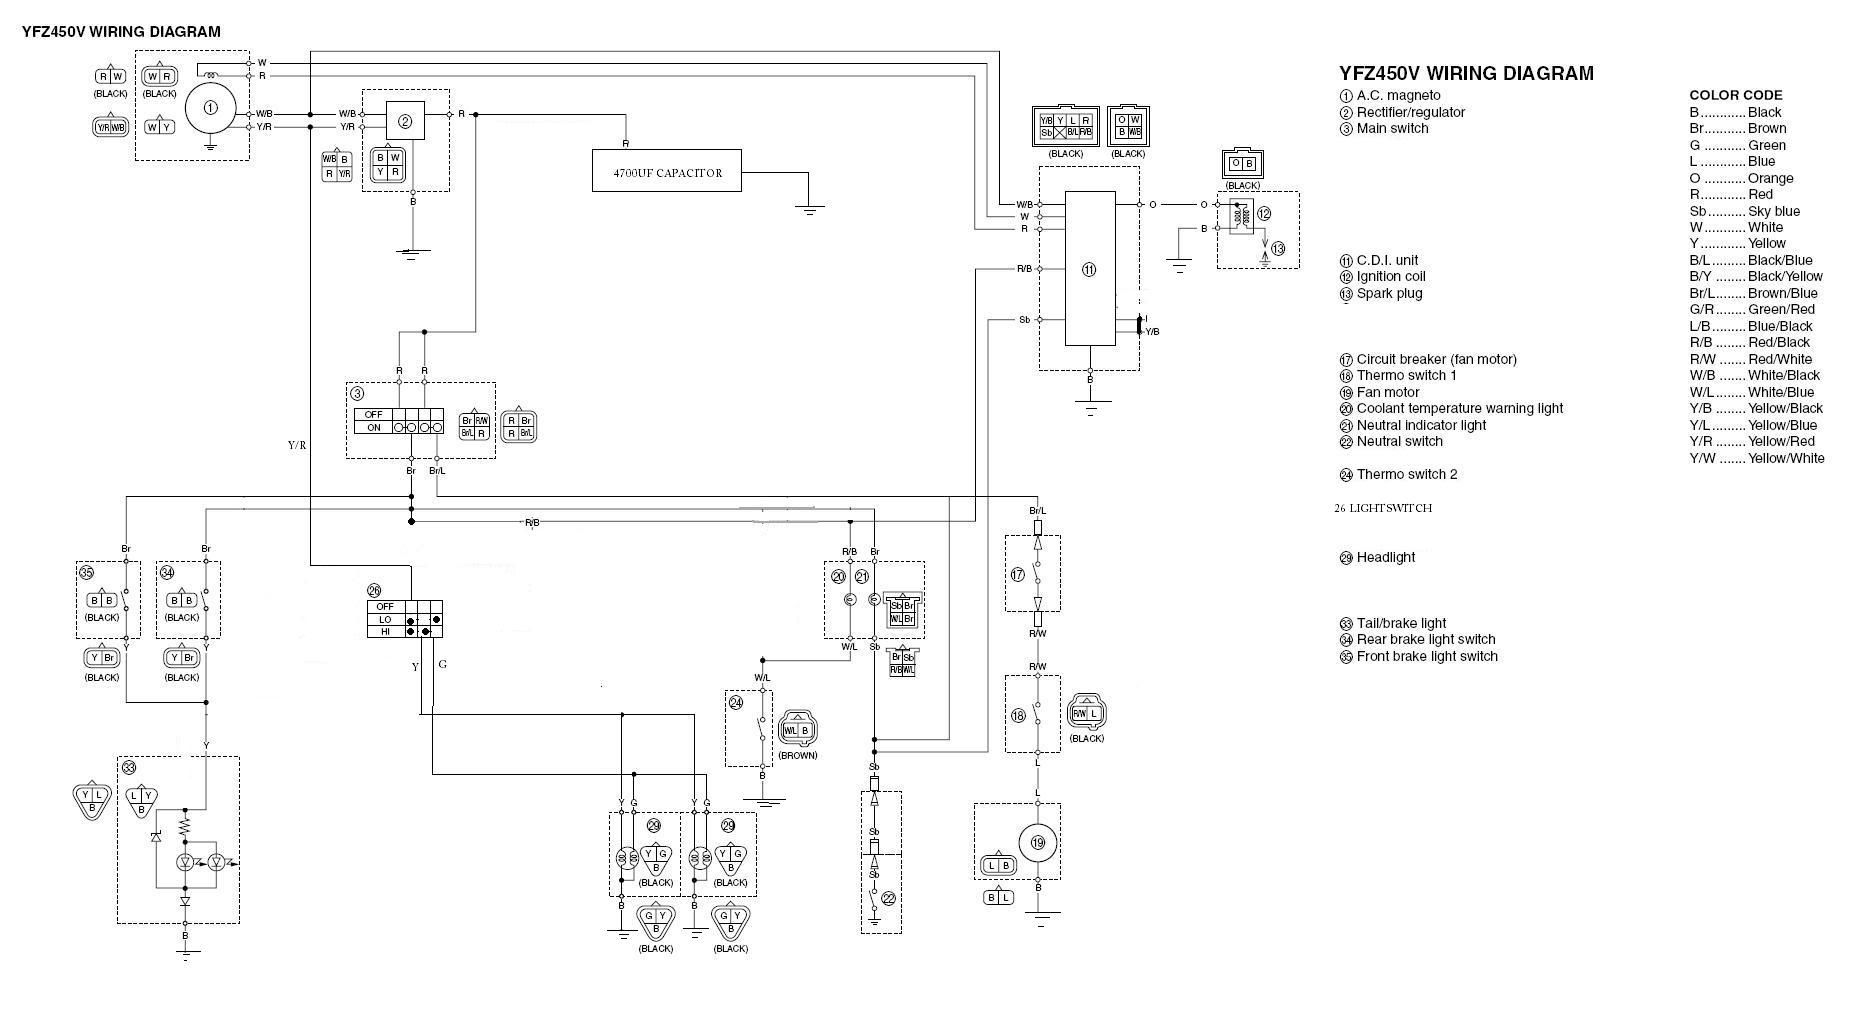 Yfz450 Wiring Diagram